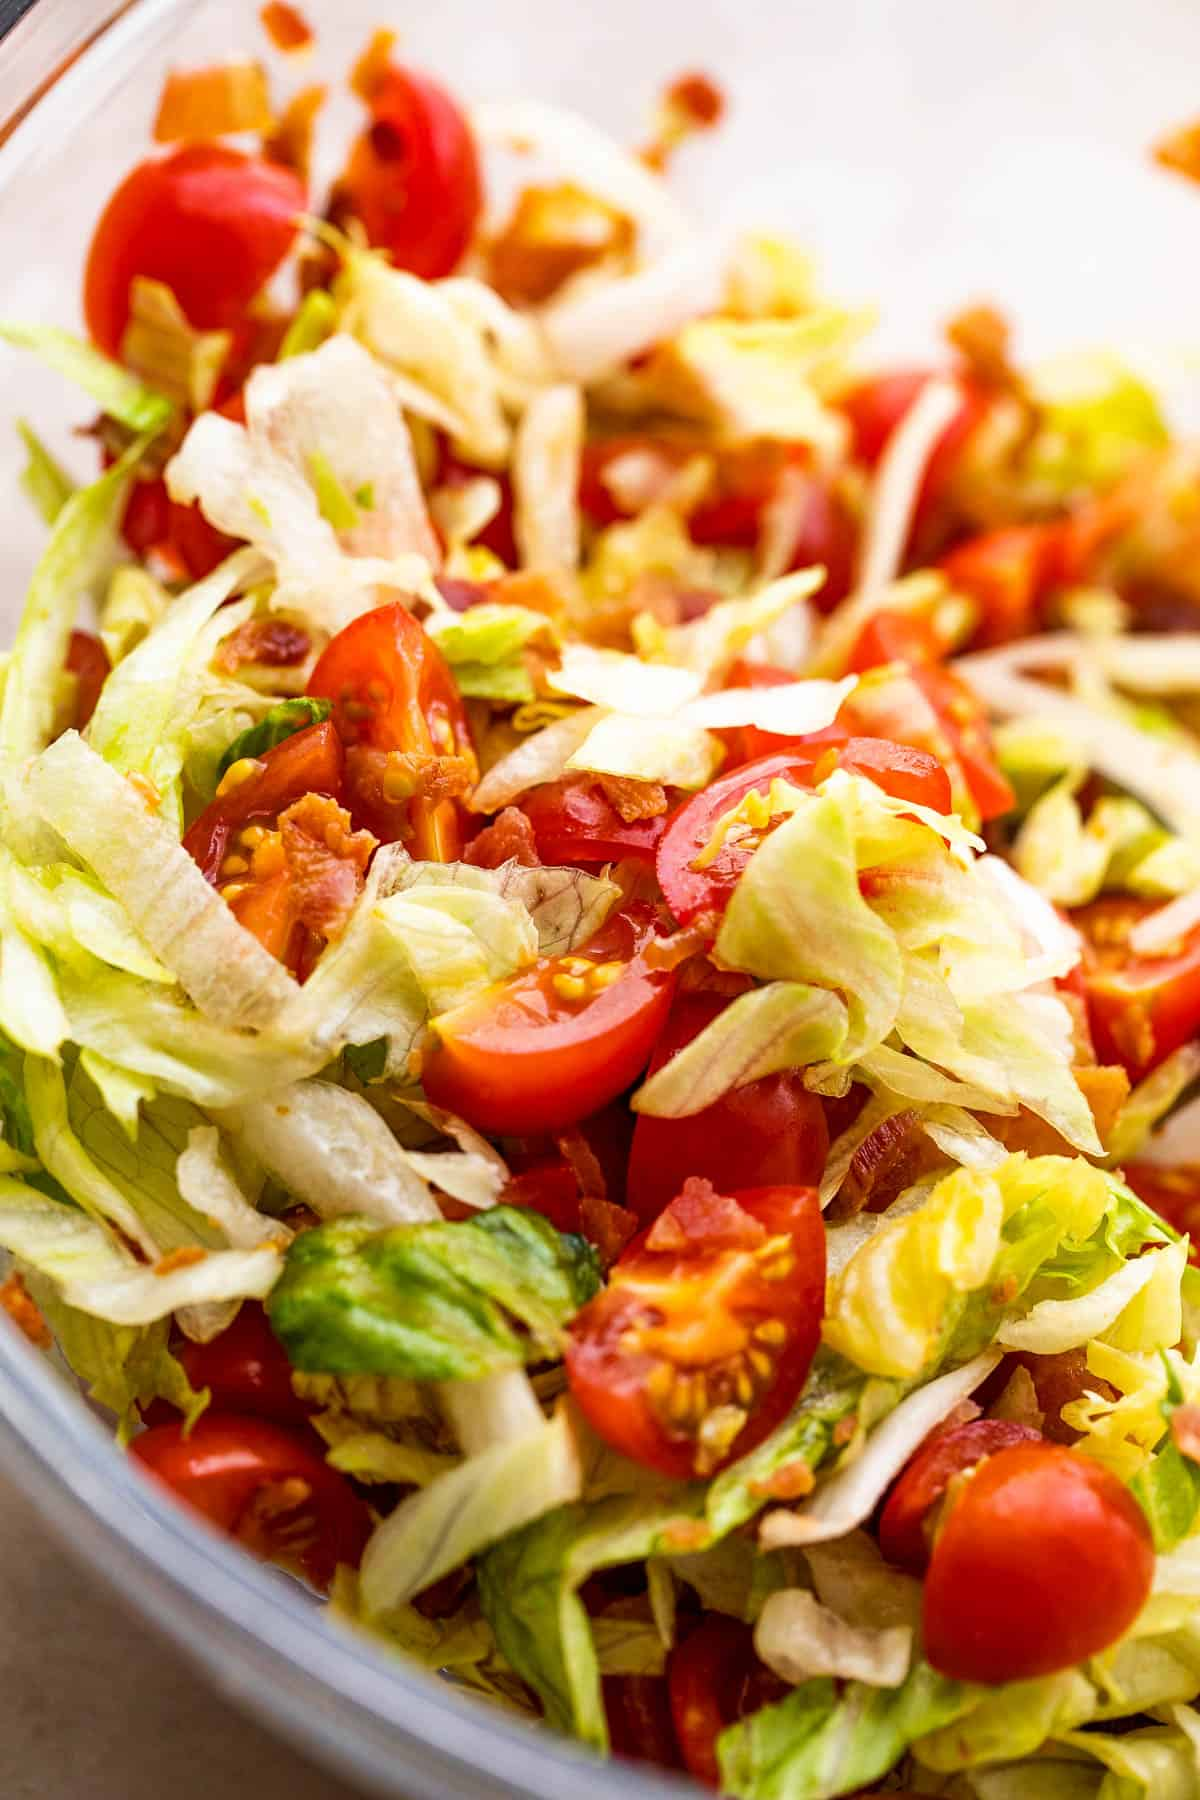 bacon, lettuce, and tomato salad in a glass bowl